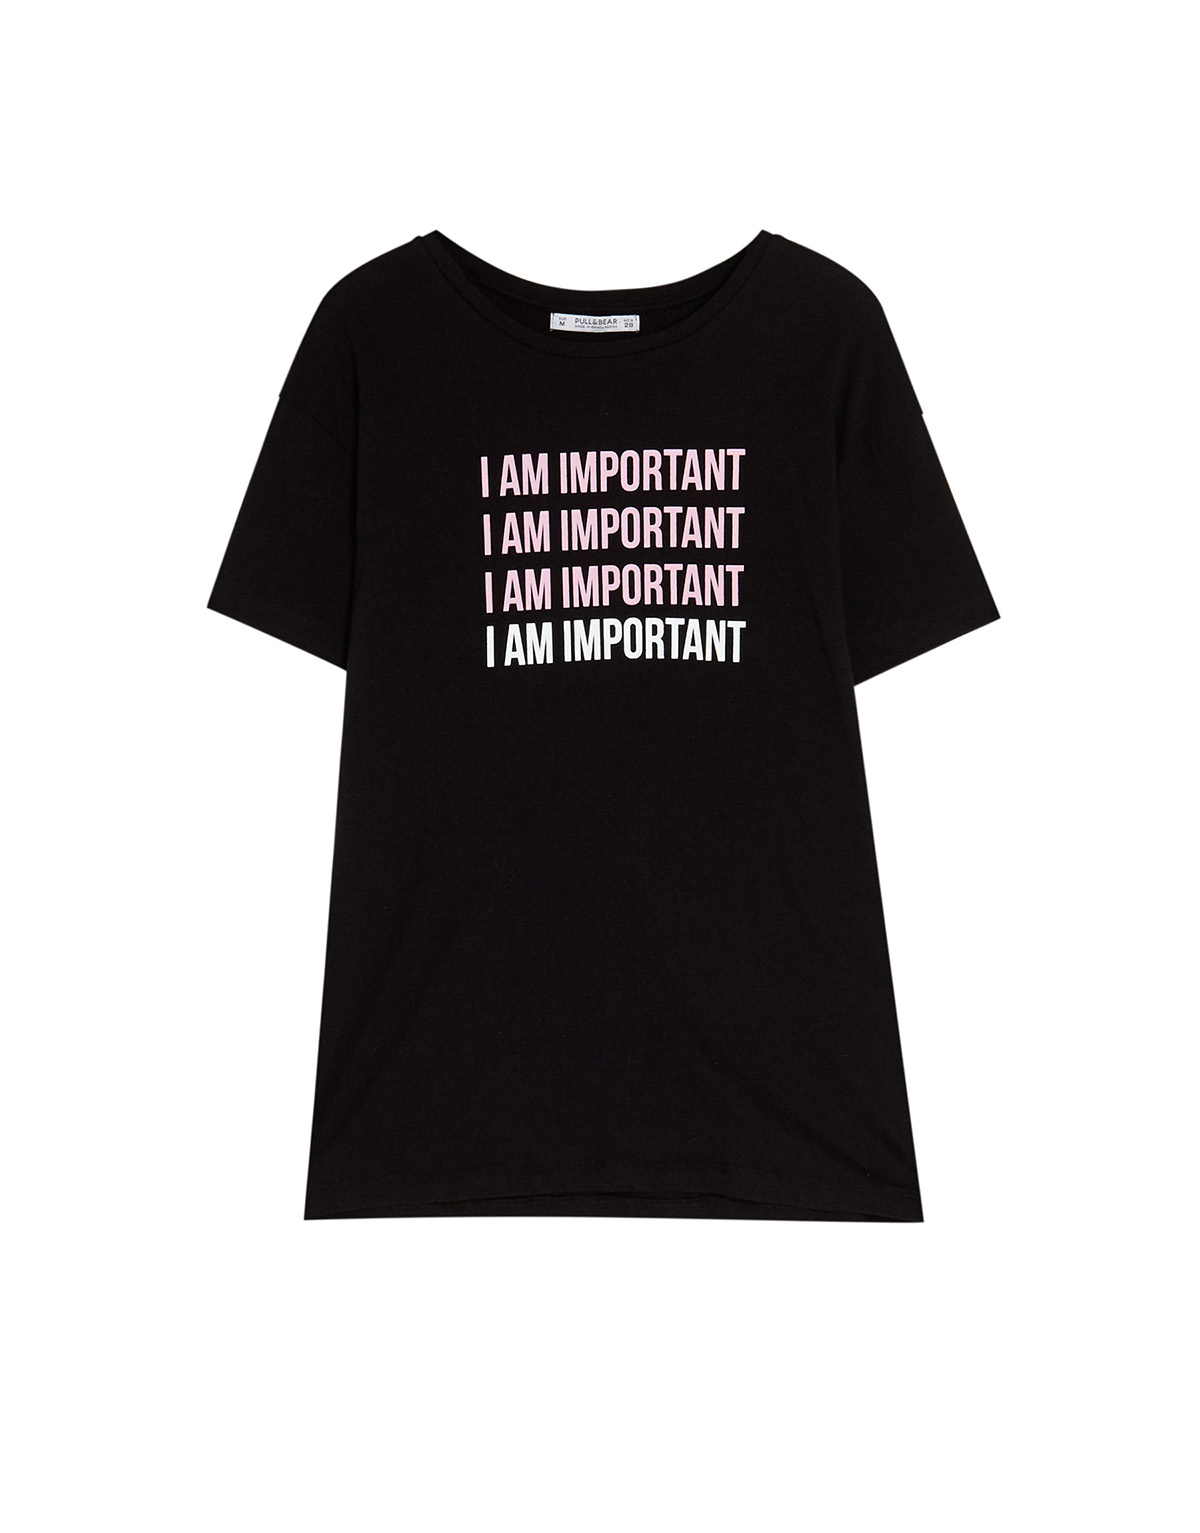 pull-and-bear-i-am-important. Soy importante